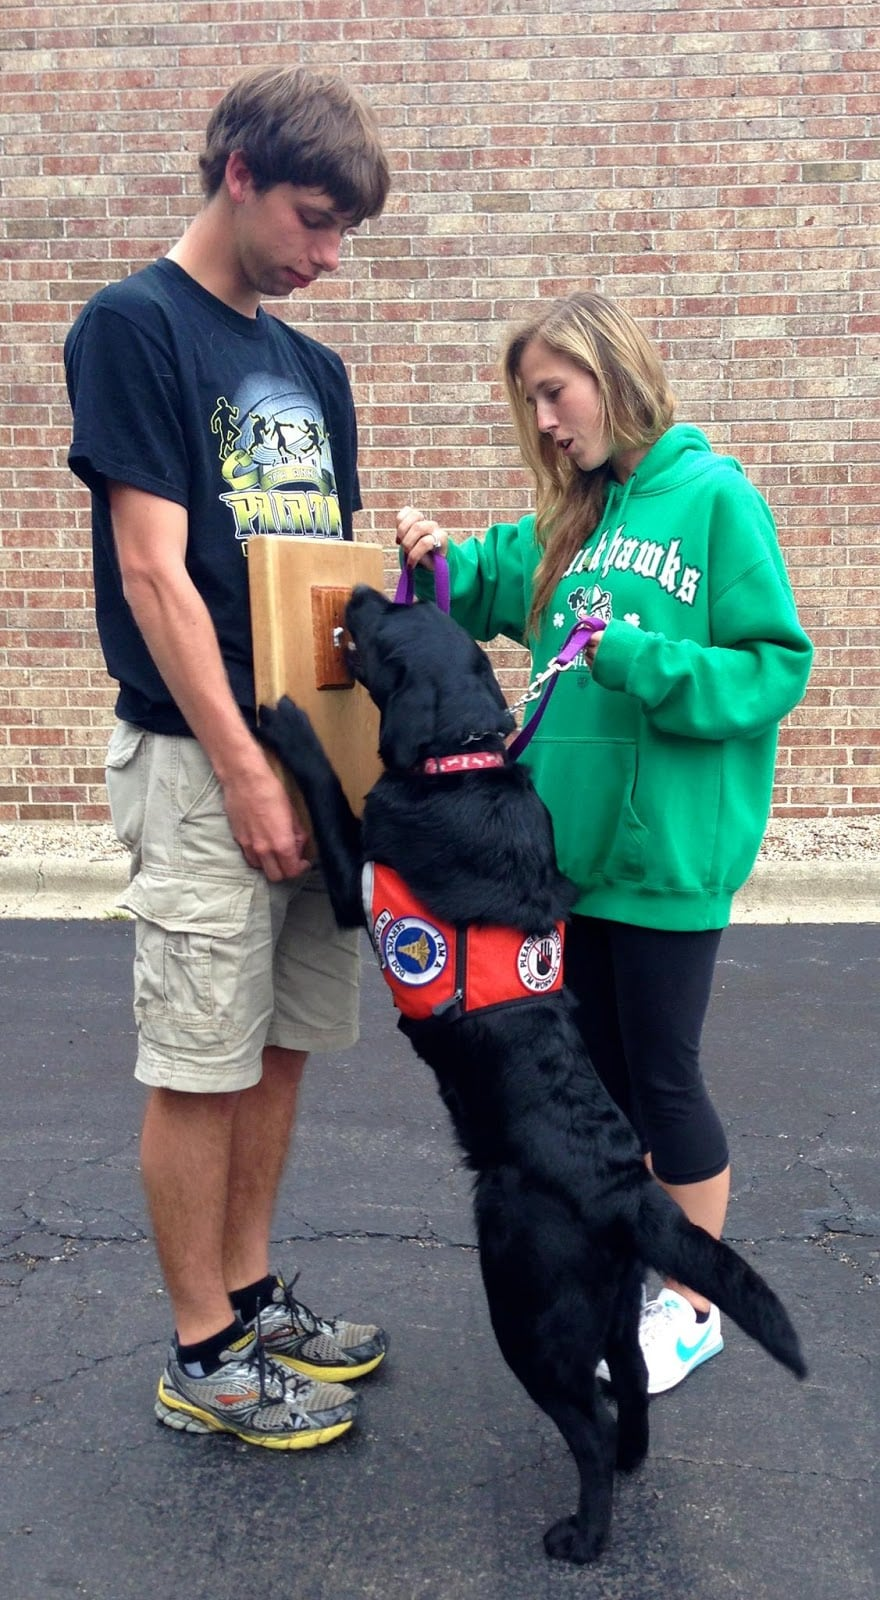 U of I Service Dogs Get Ready for Fall 2013